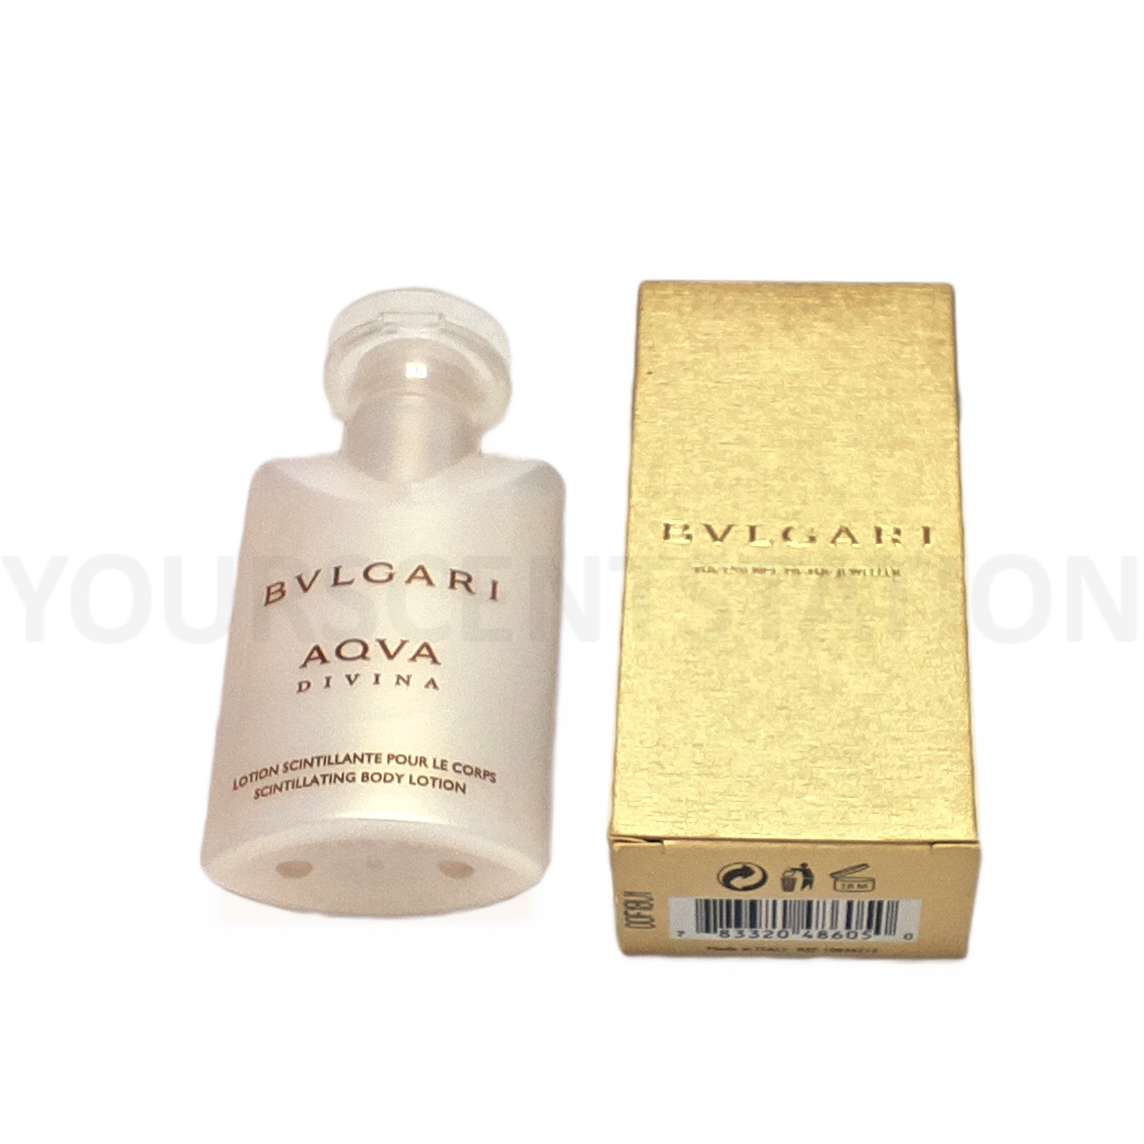 Bvlgari Aqua Divina Body Lotion 40ml.jpg